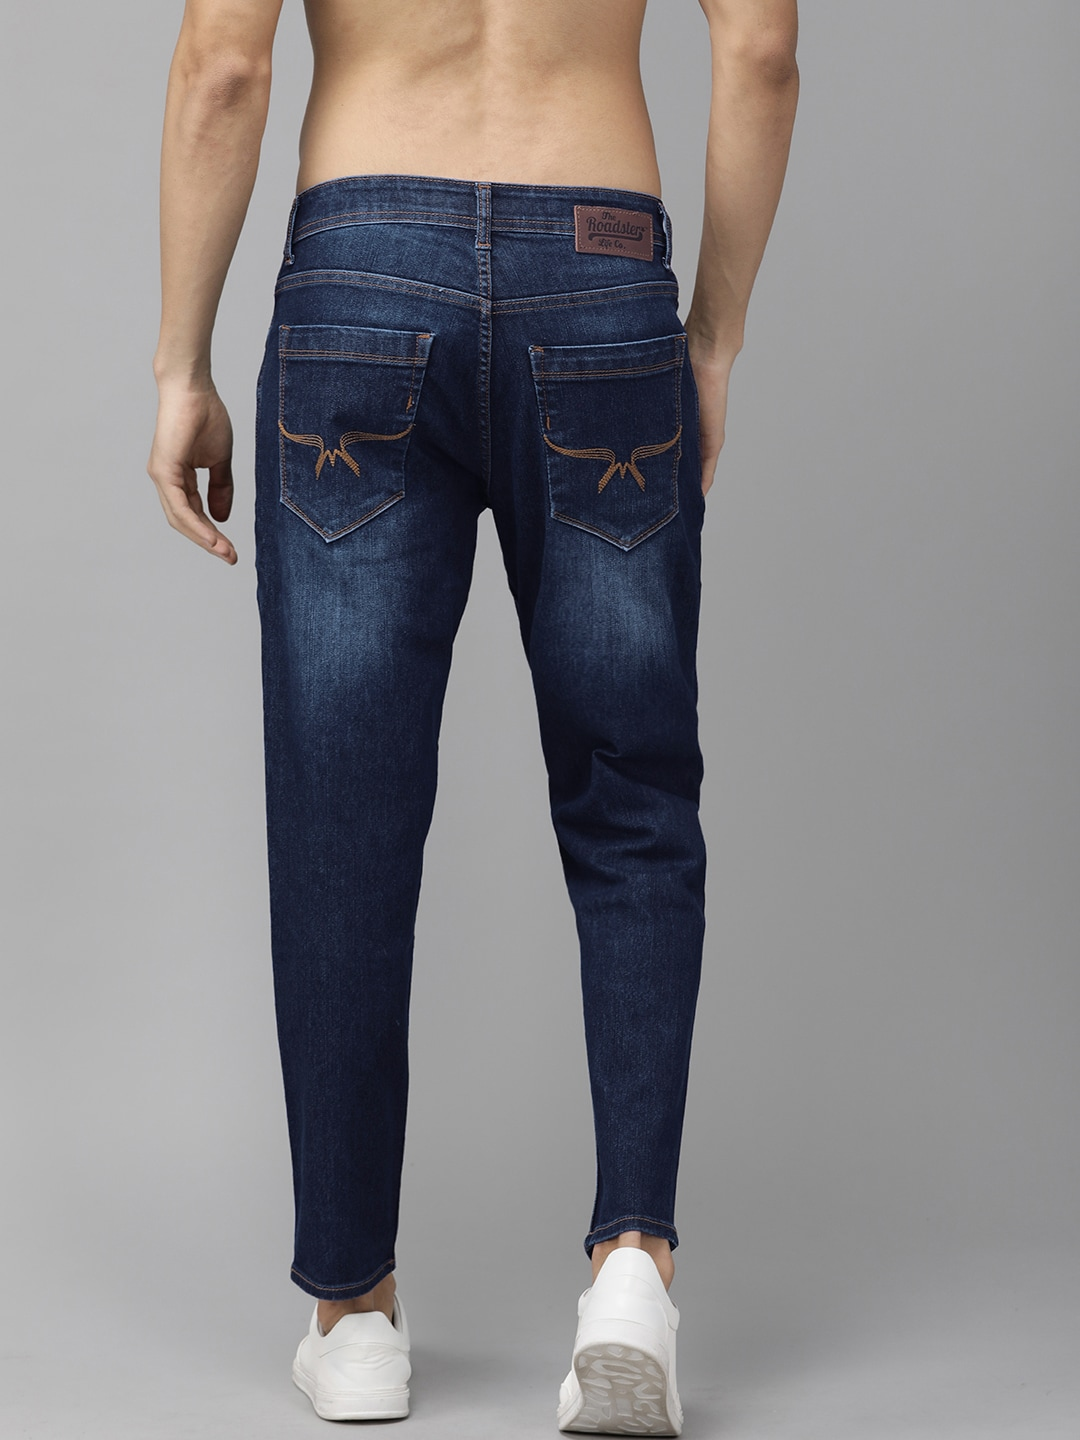 Roadster Men Blue Carrot Fit Mid-Rise Clean Look Stretchable Jeans